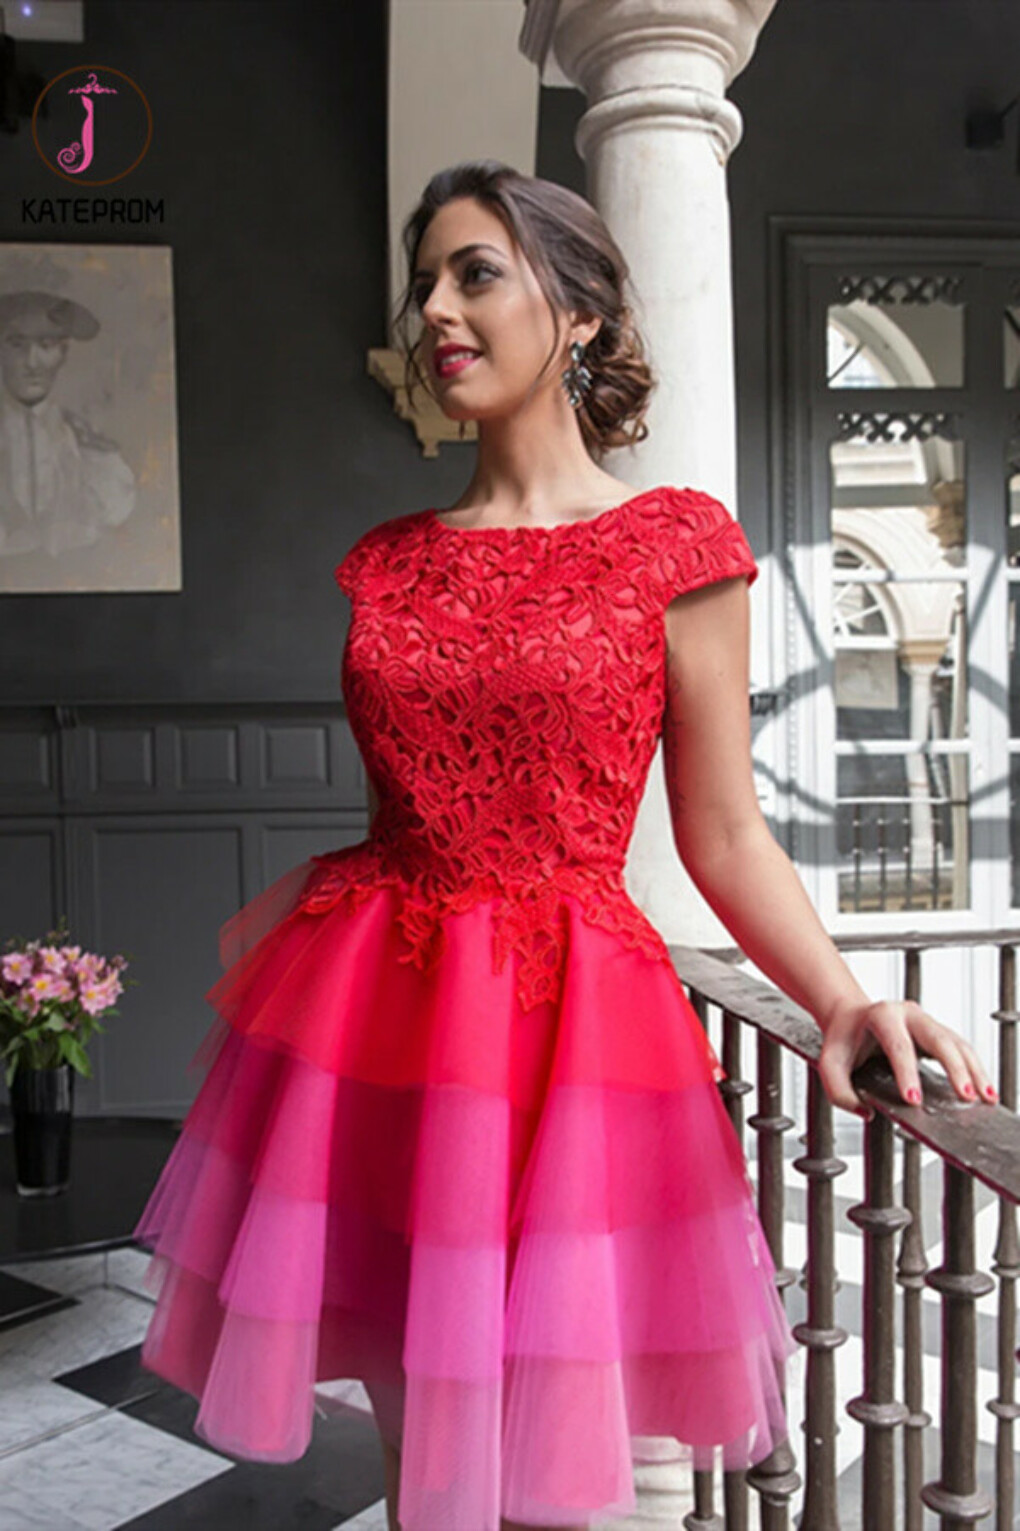 Kateprom Red A-line Scoop Homecoming Dress Tulle Short Prom Drsess KPP1334